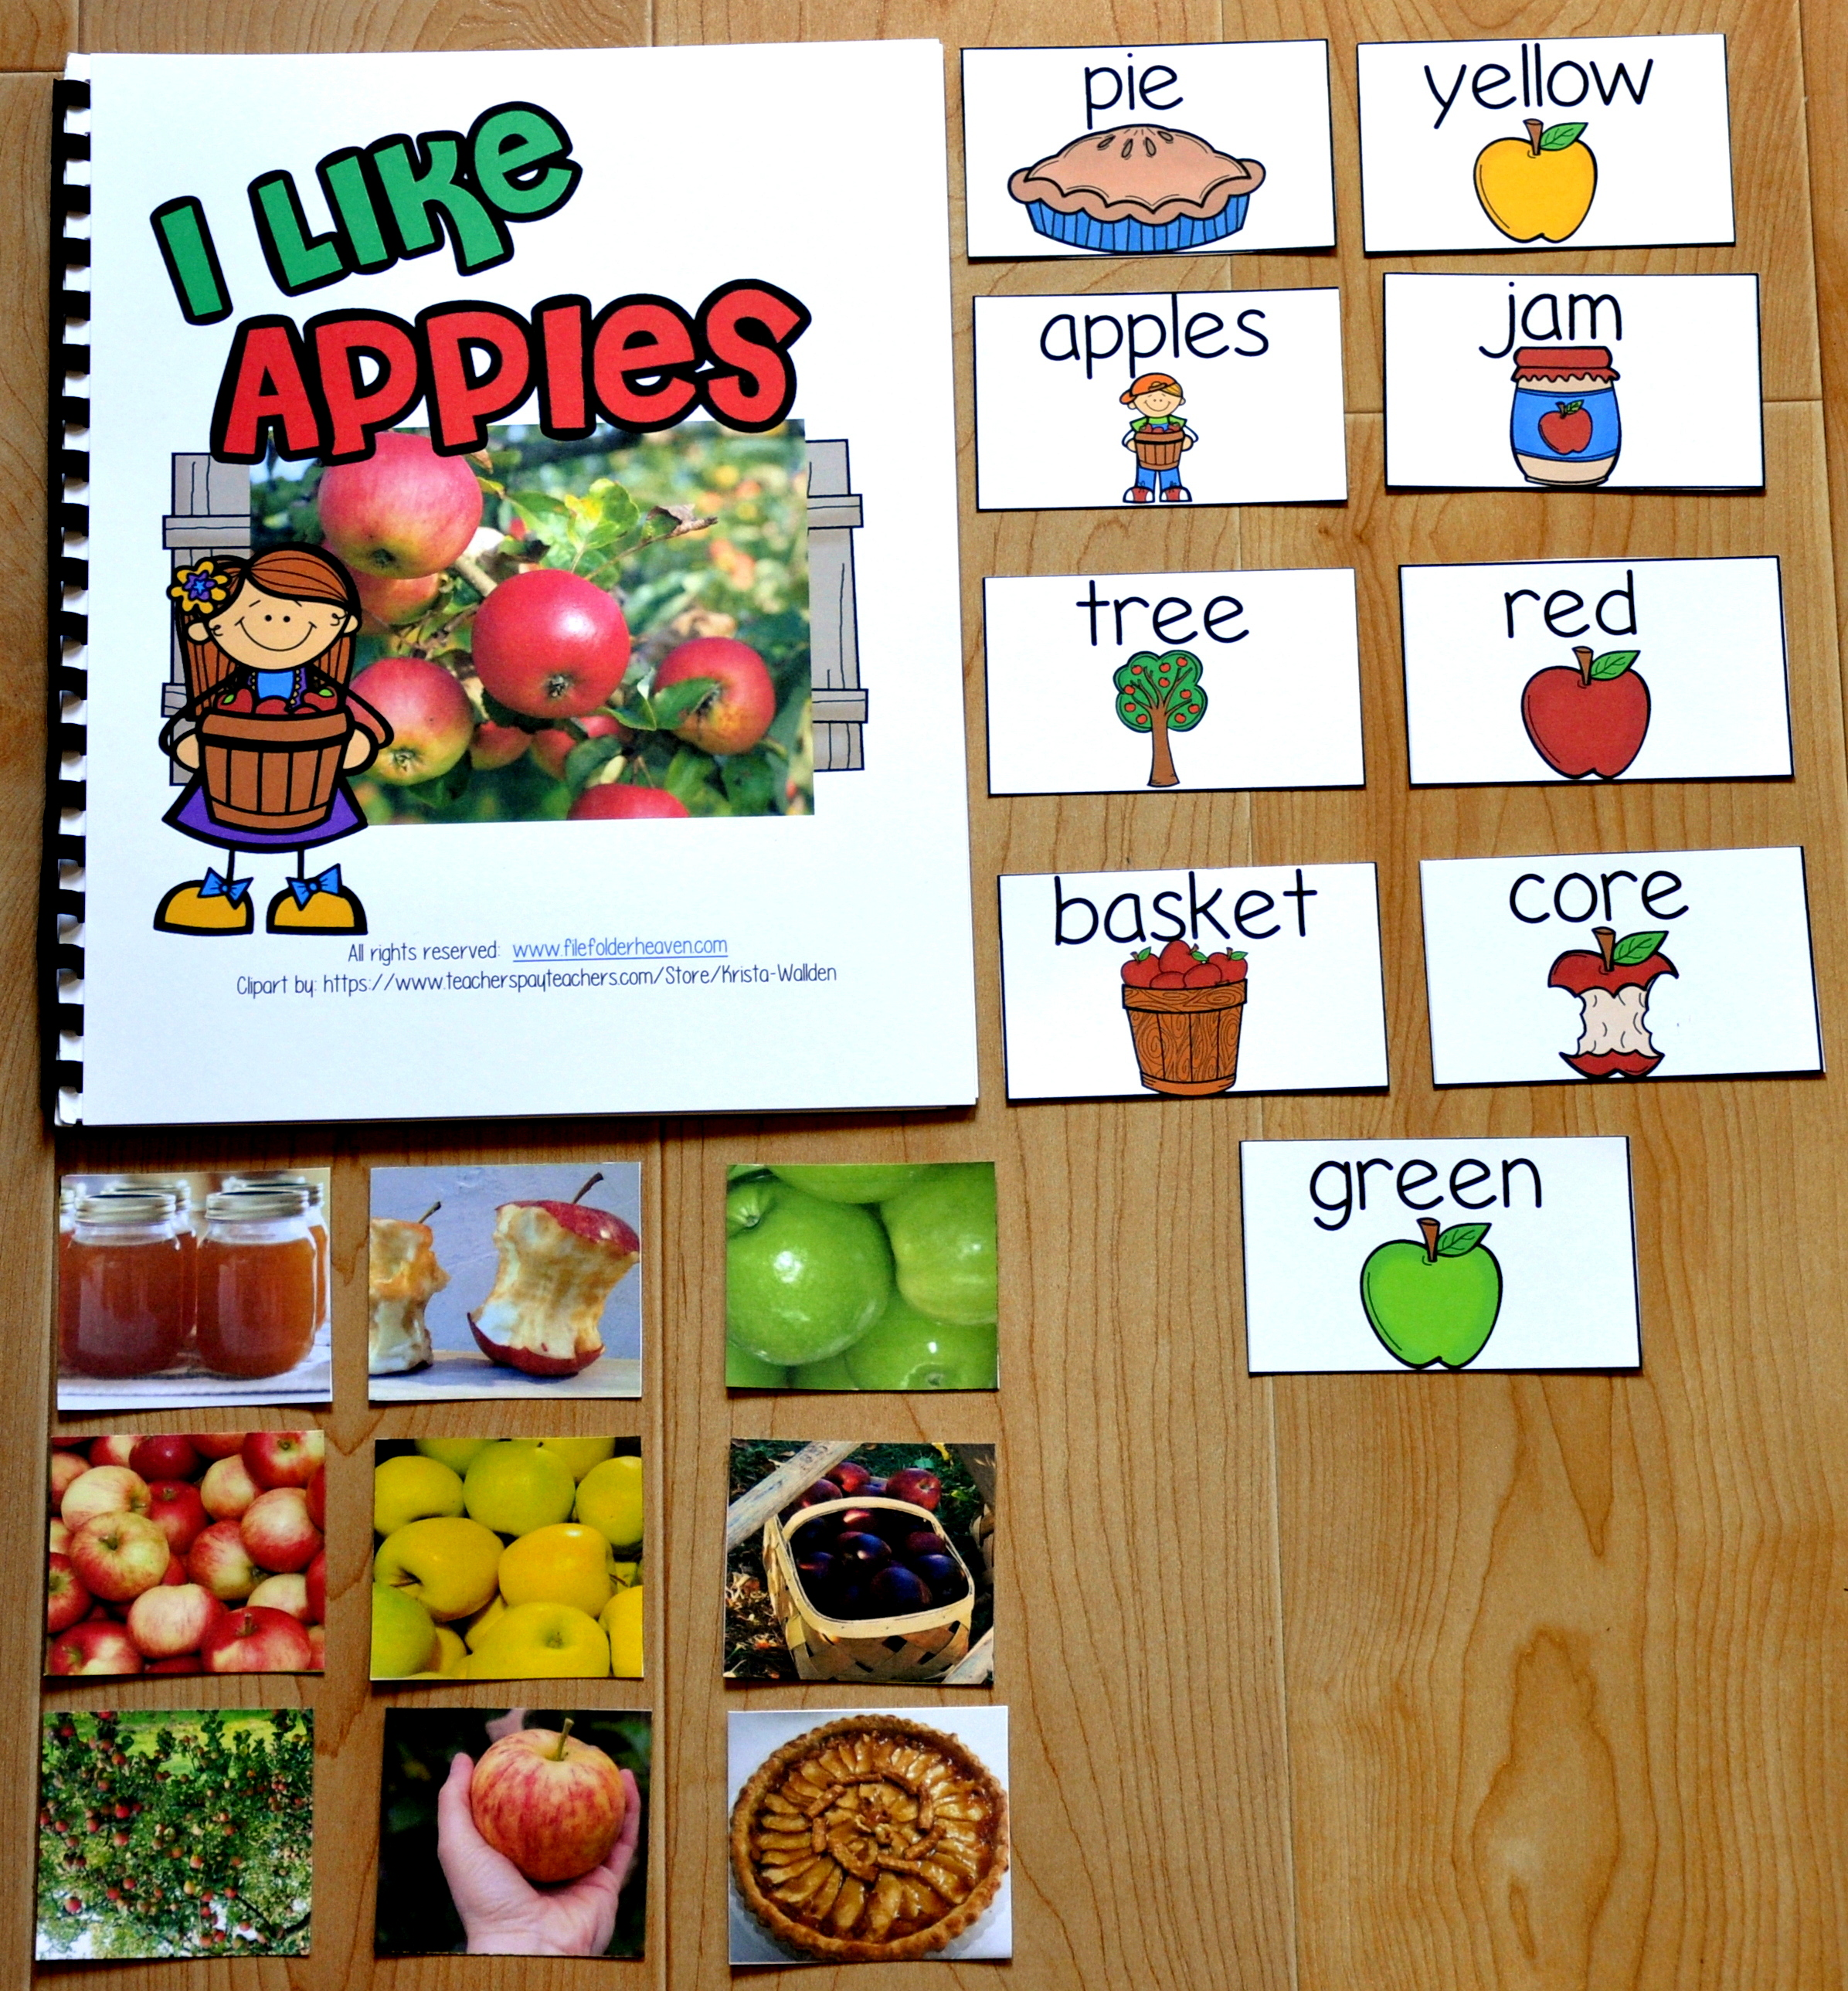 I Like Apples Adapted Book (w/Real Photos)